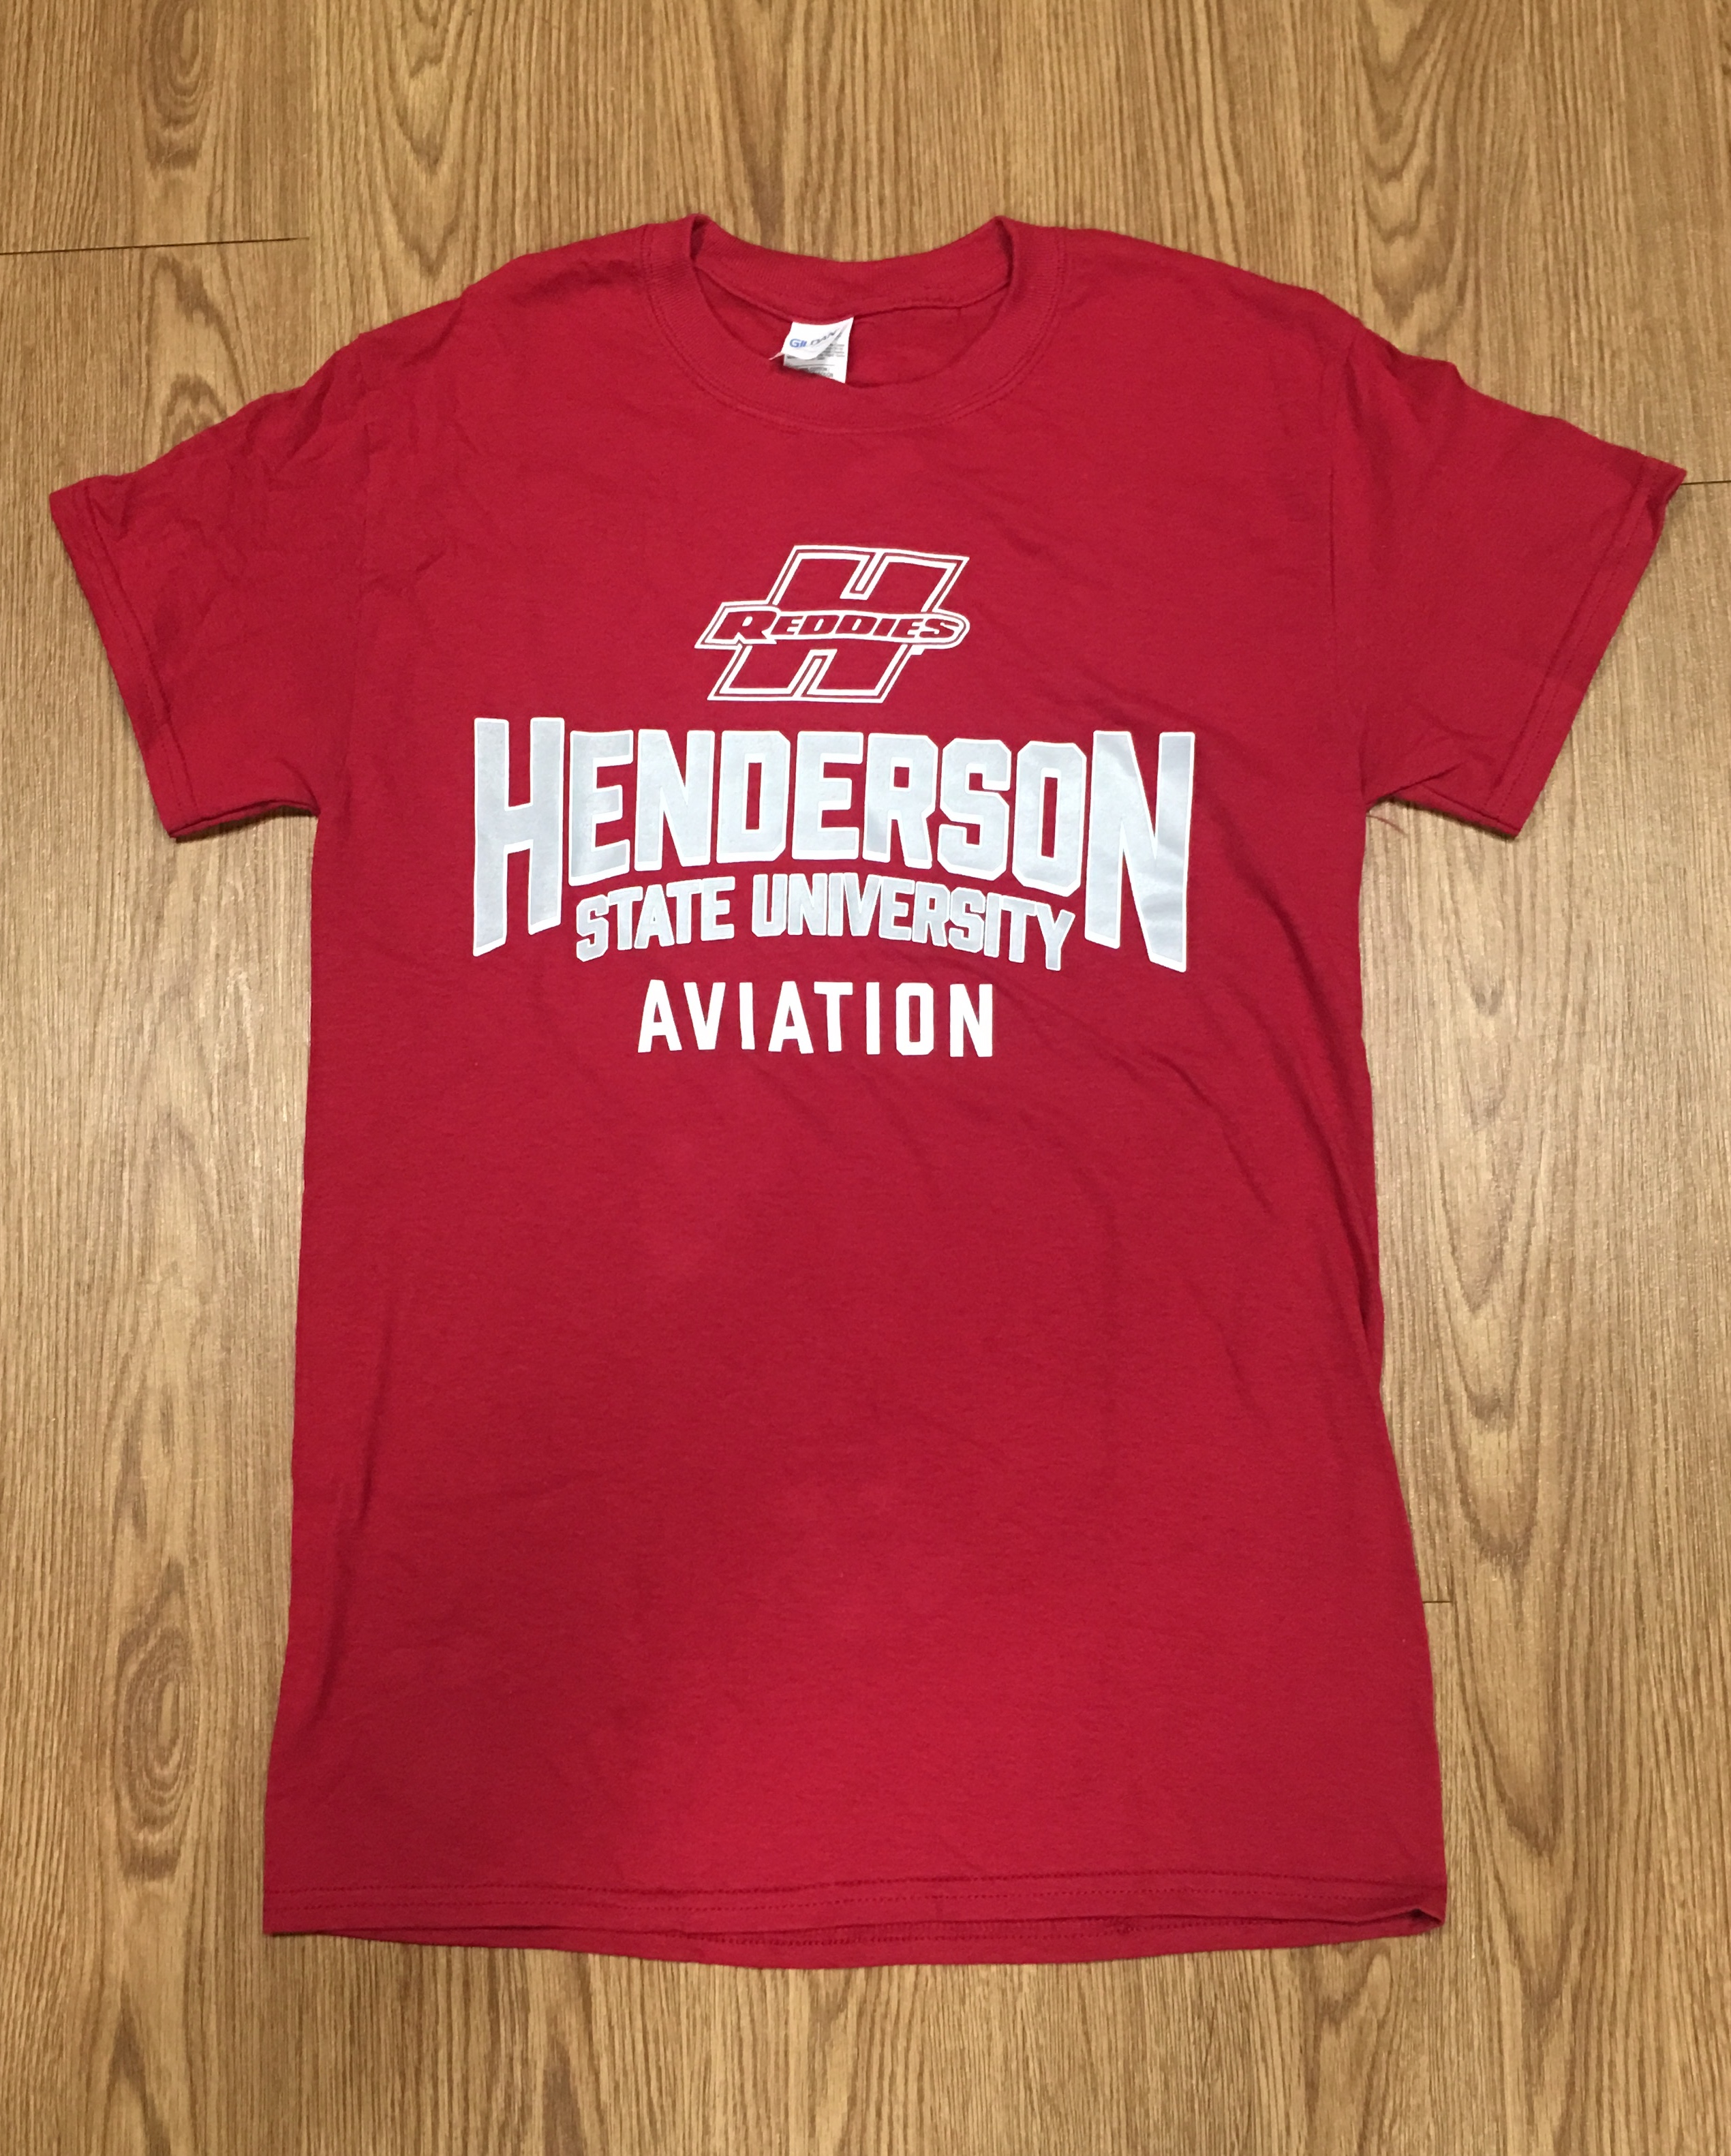 Henderson State University Aviation T-shirt